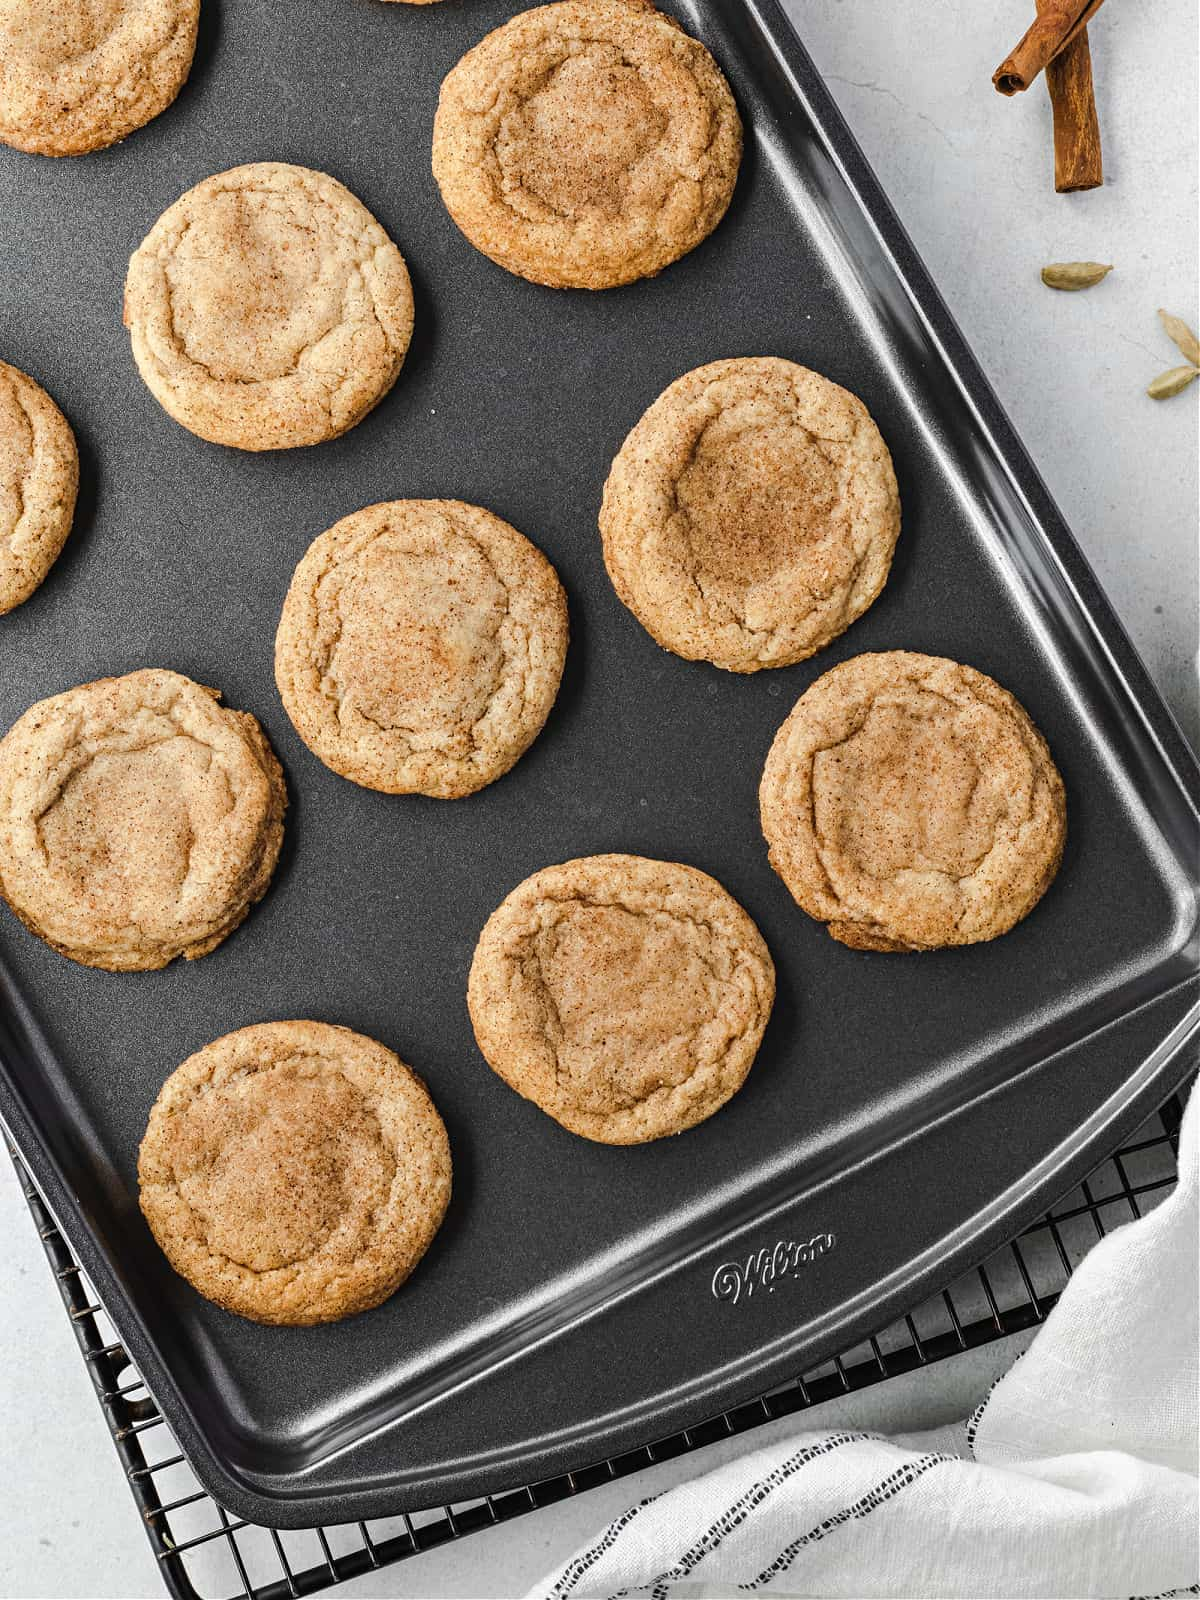 Chai spice cookies on a baking sheet cooling.